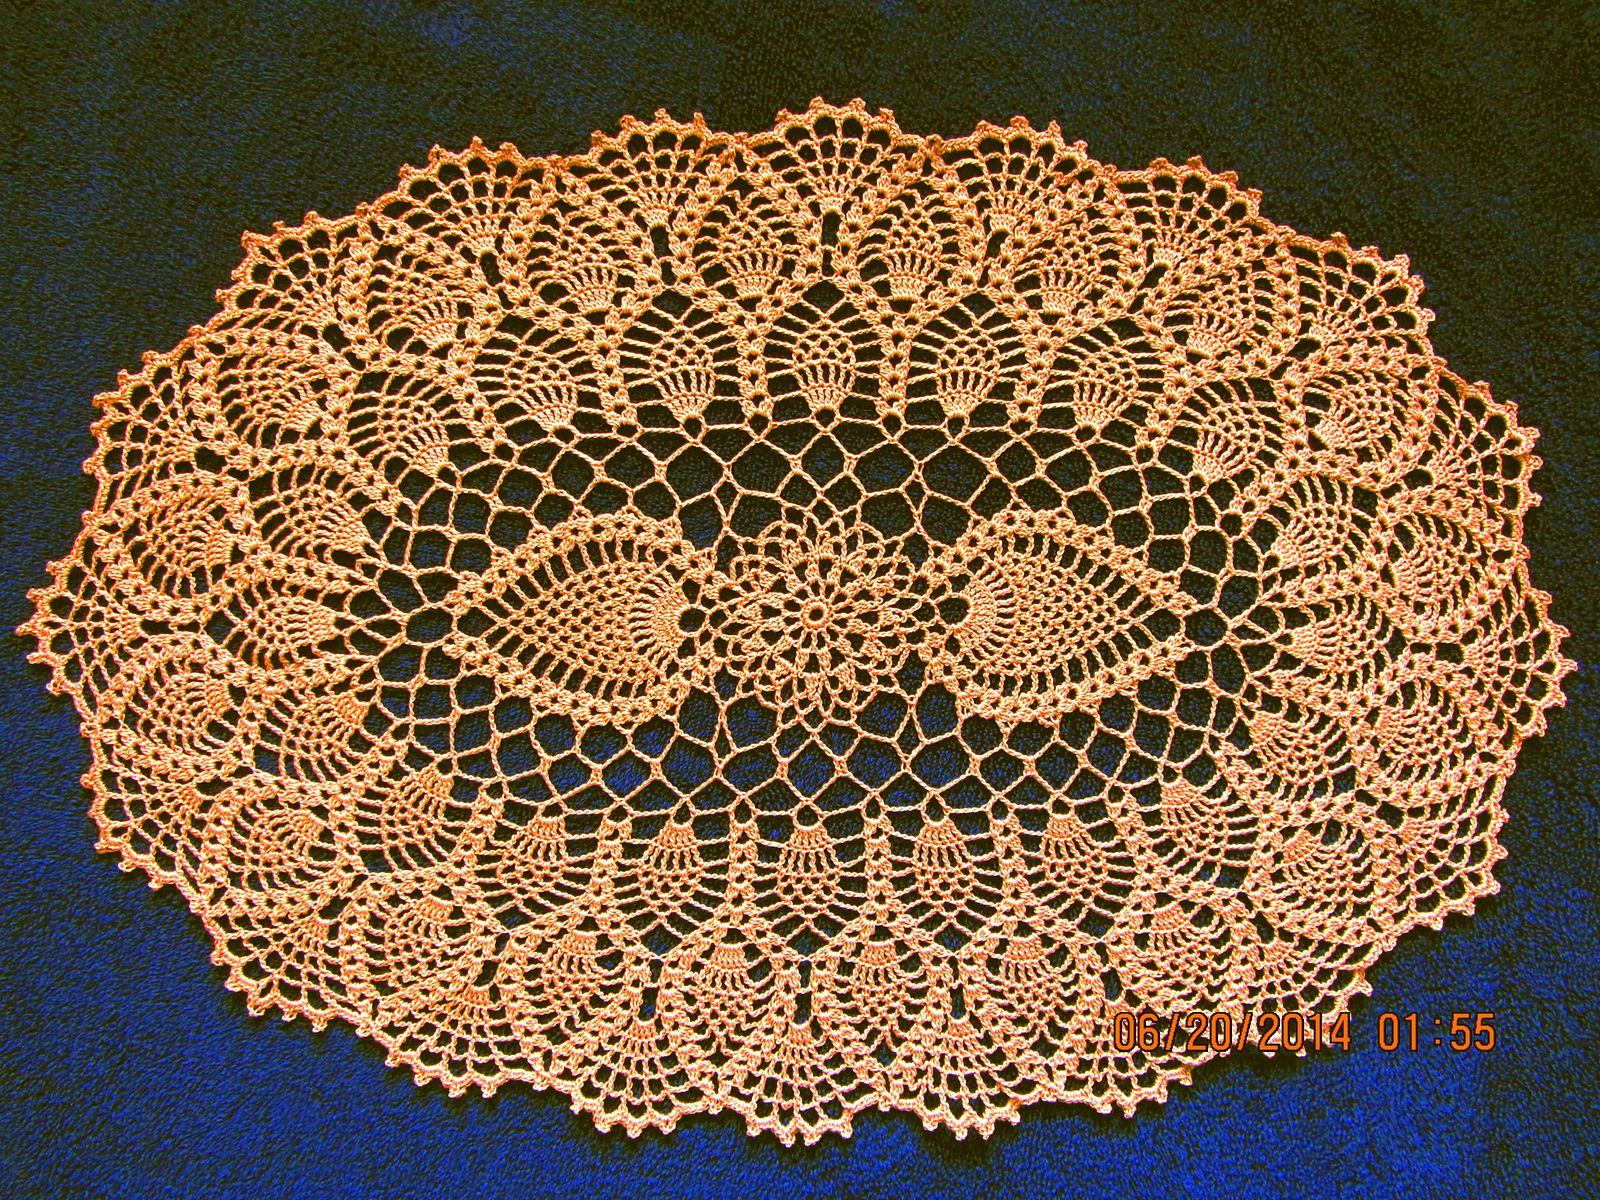 Oval pineapple crochet doily free pattern crochet doilies oval pineapple crochet doily free pattern bankloansurffo Image collections